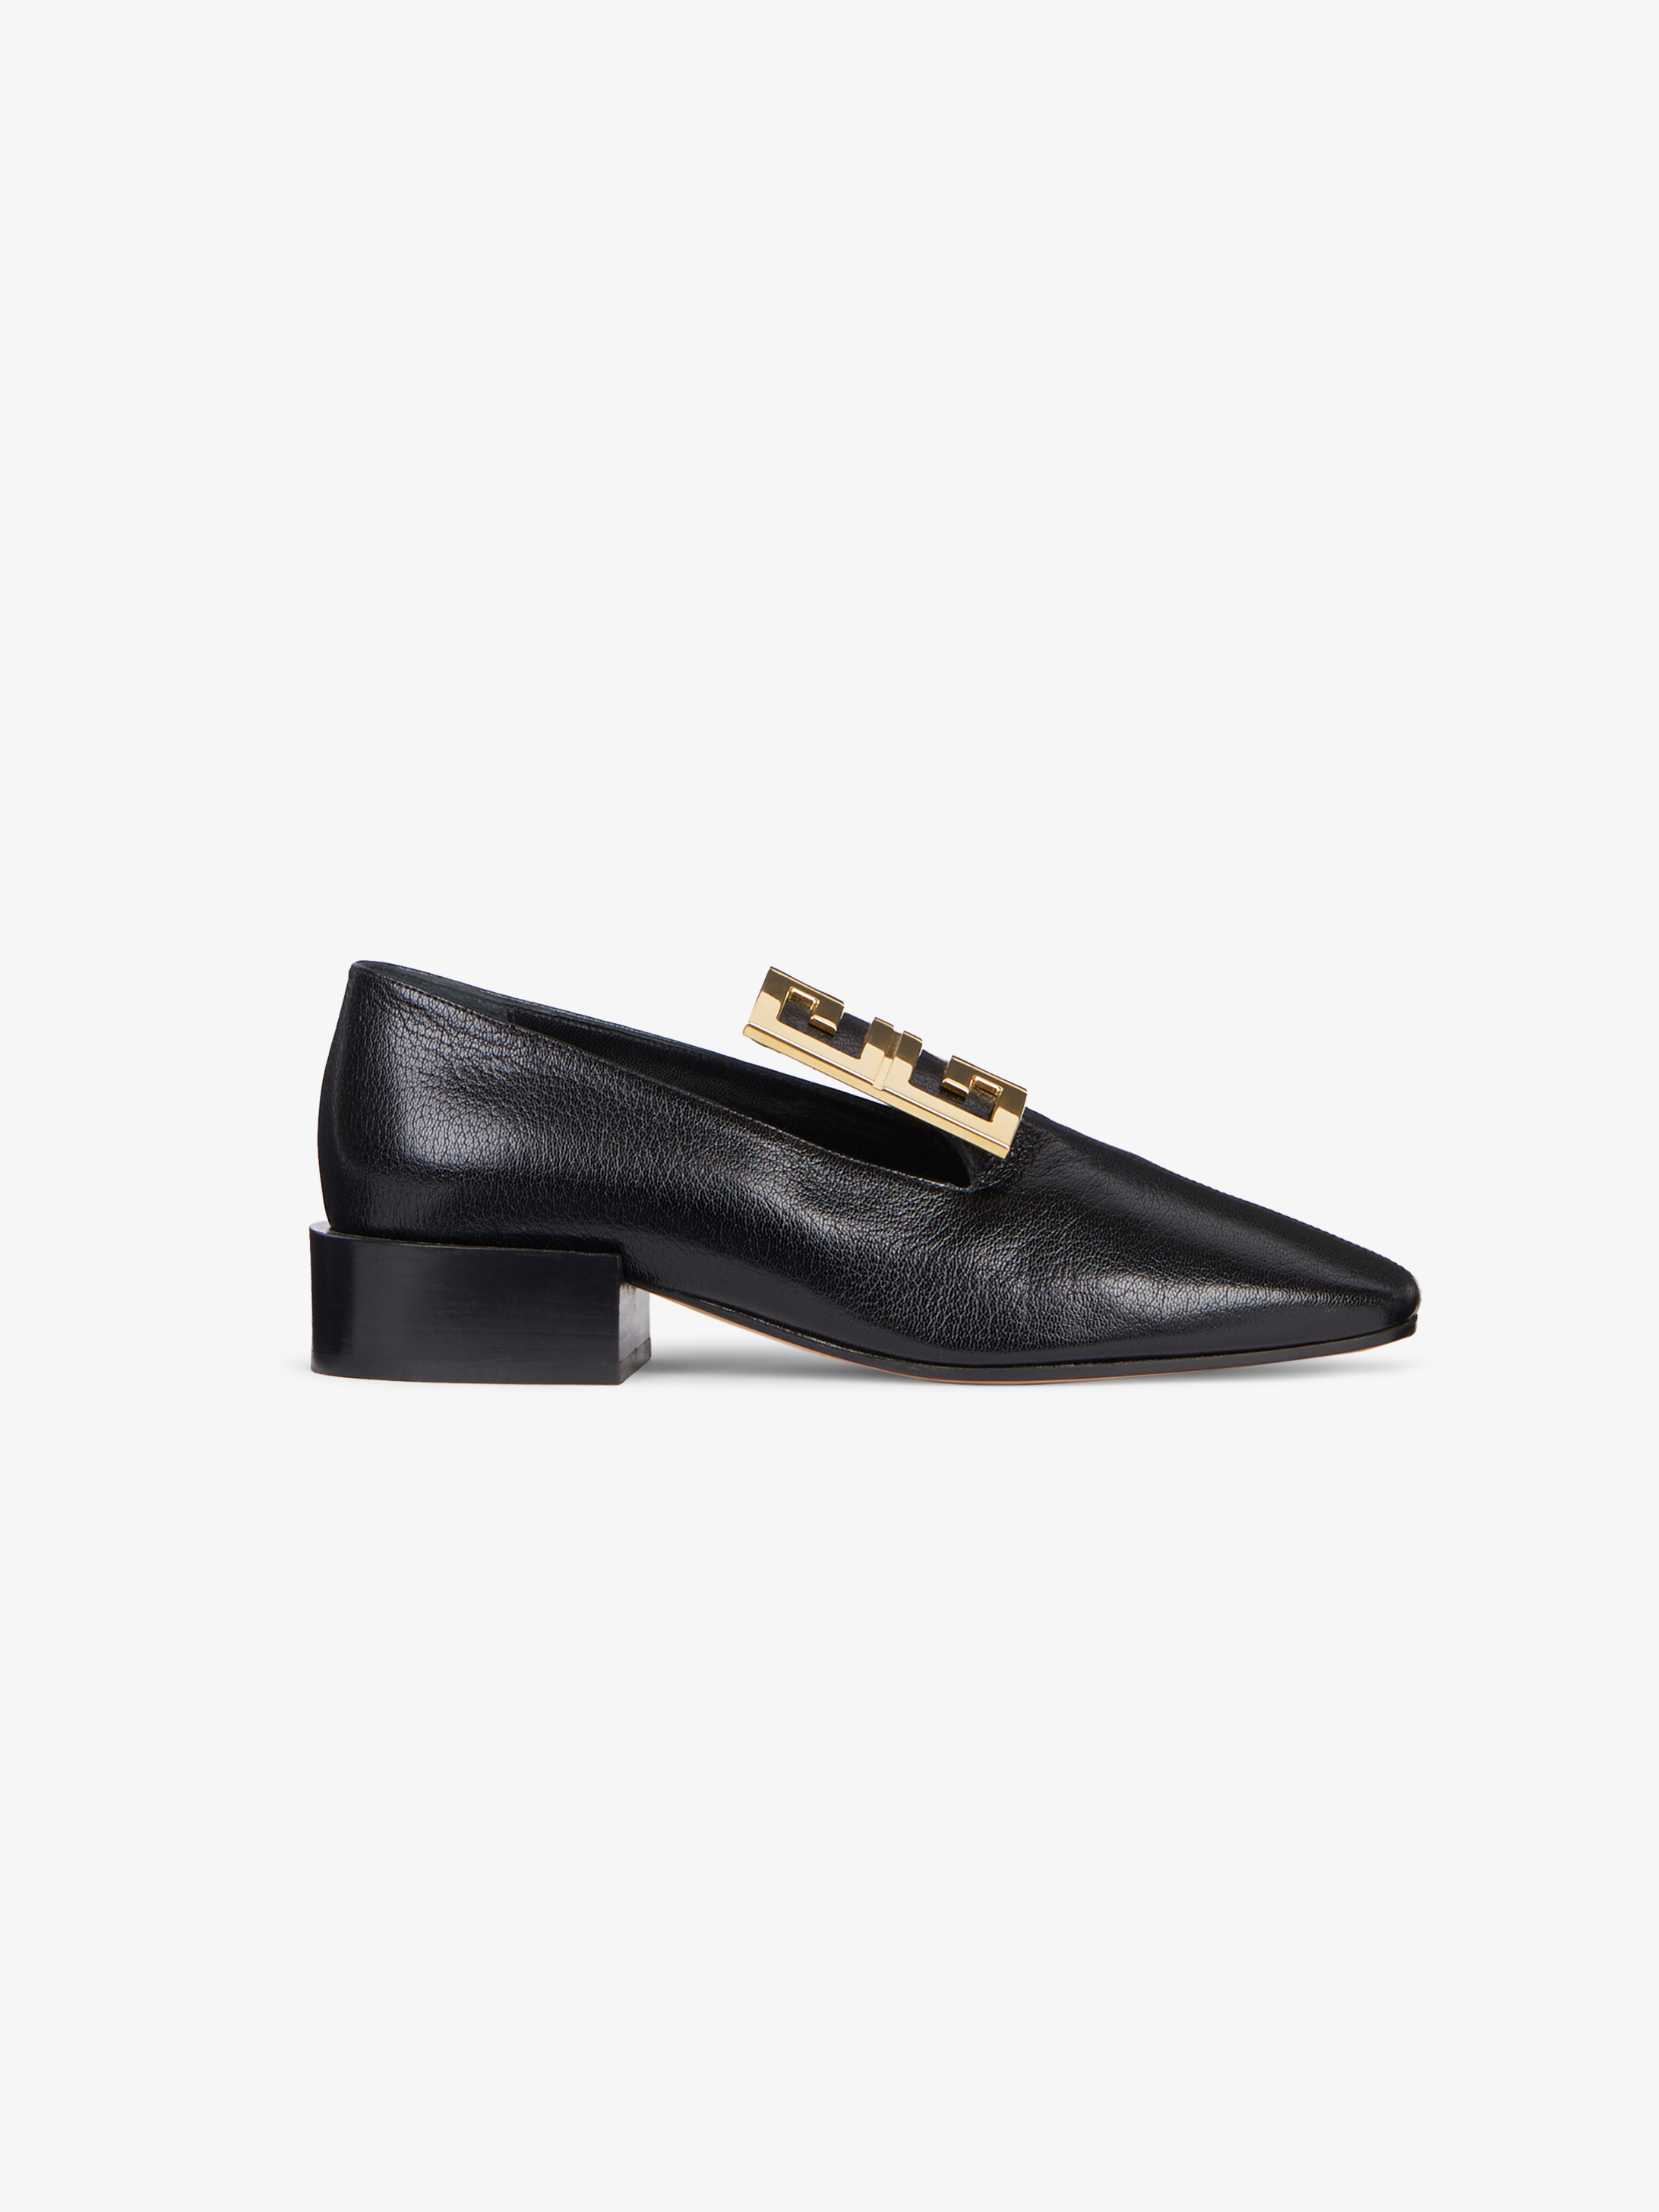 4G loafers in leather